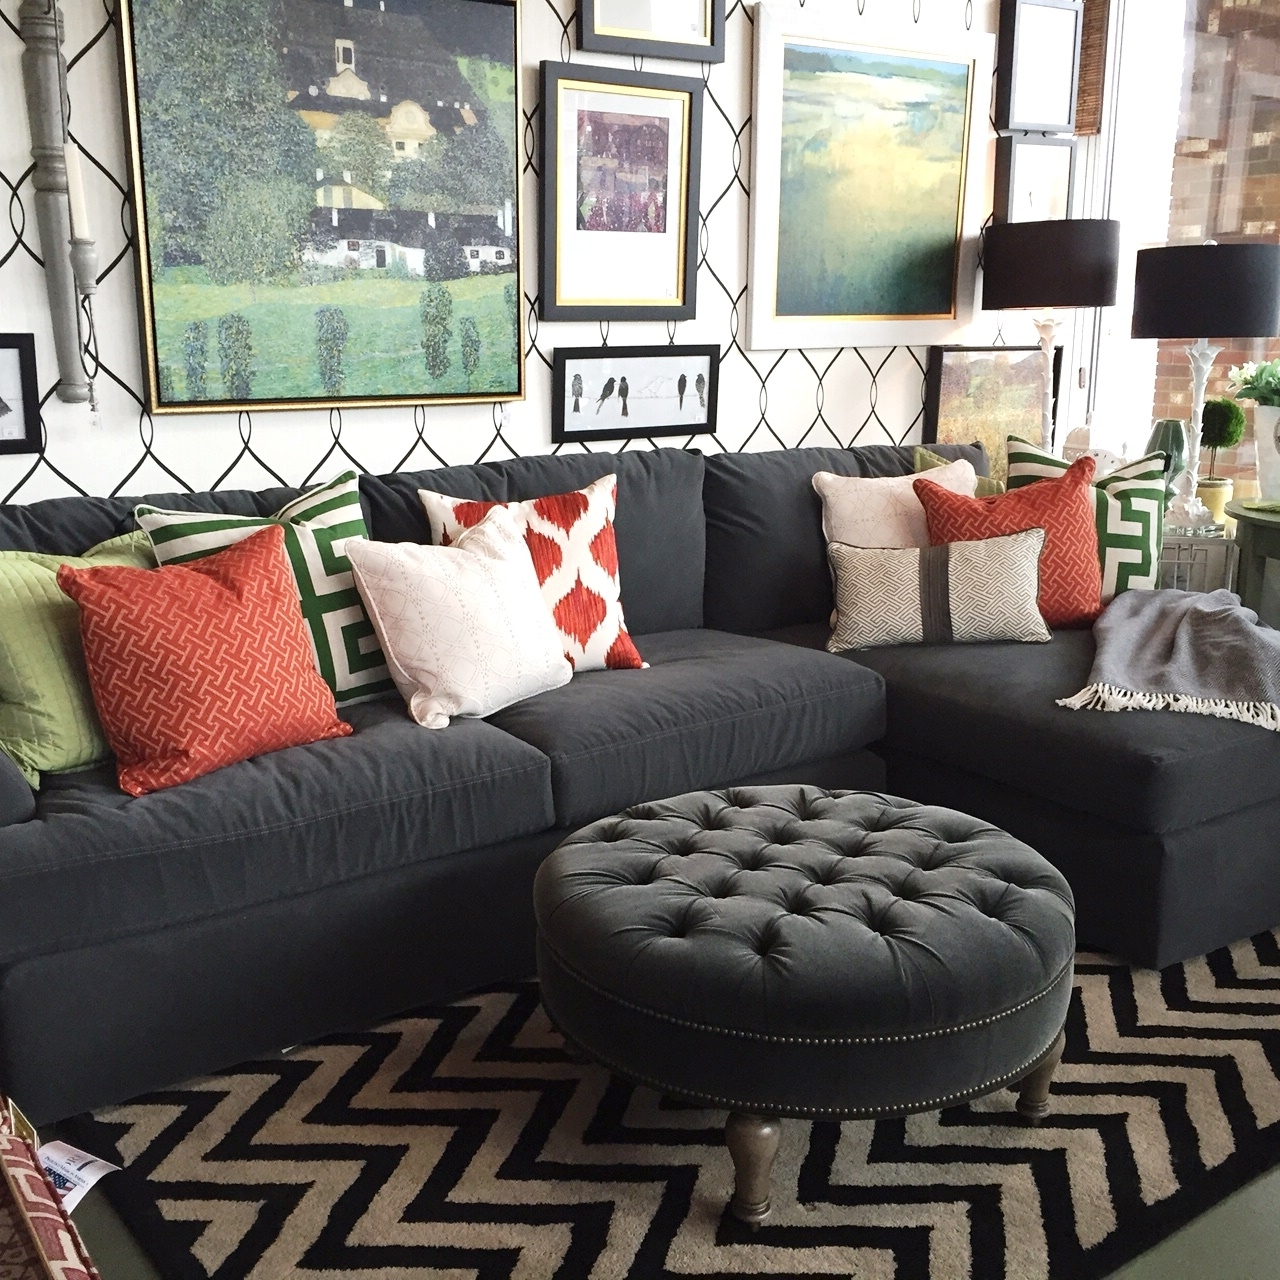 Sectional Sofas In Small Spaces | Trellis Of Erie Intended For Small Sectional Sofas With Chaise And Ottoman (View 9 of 15)